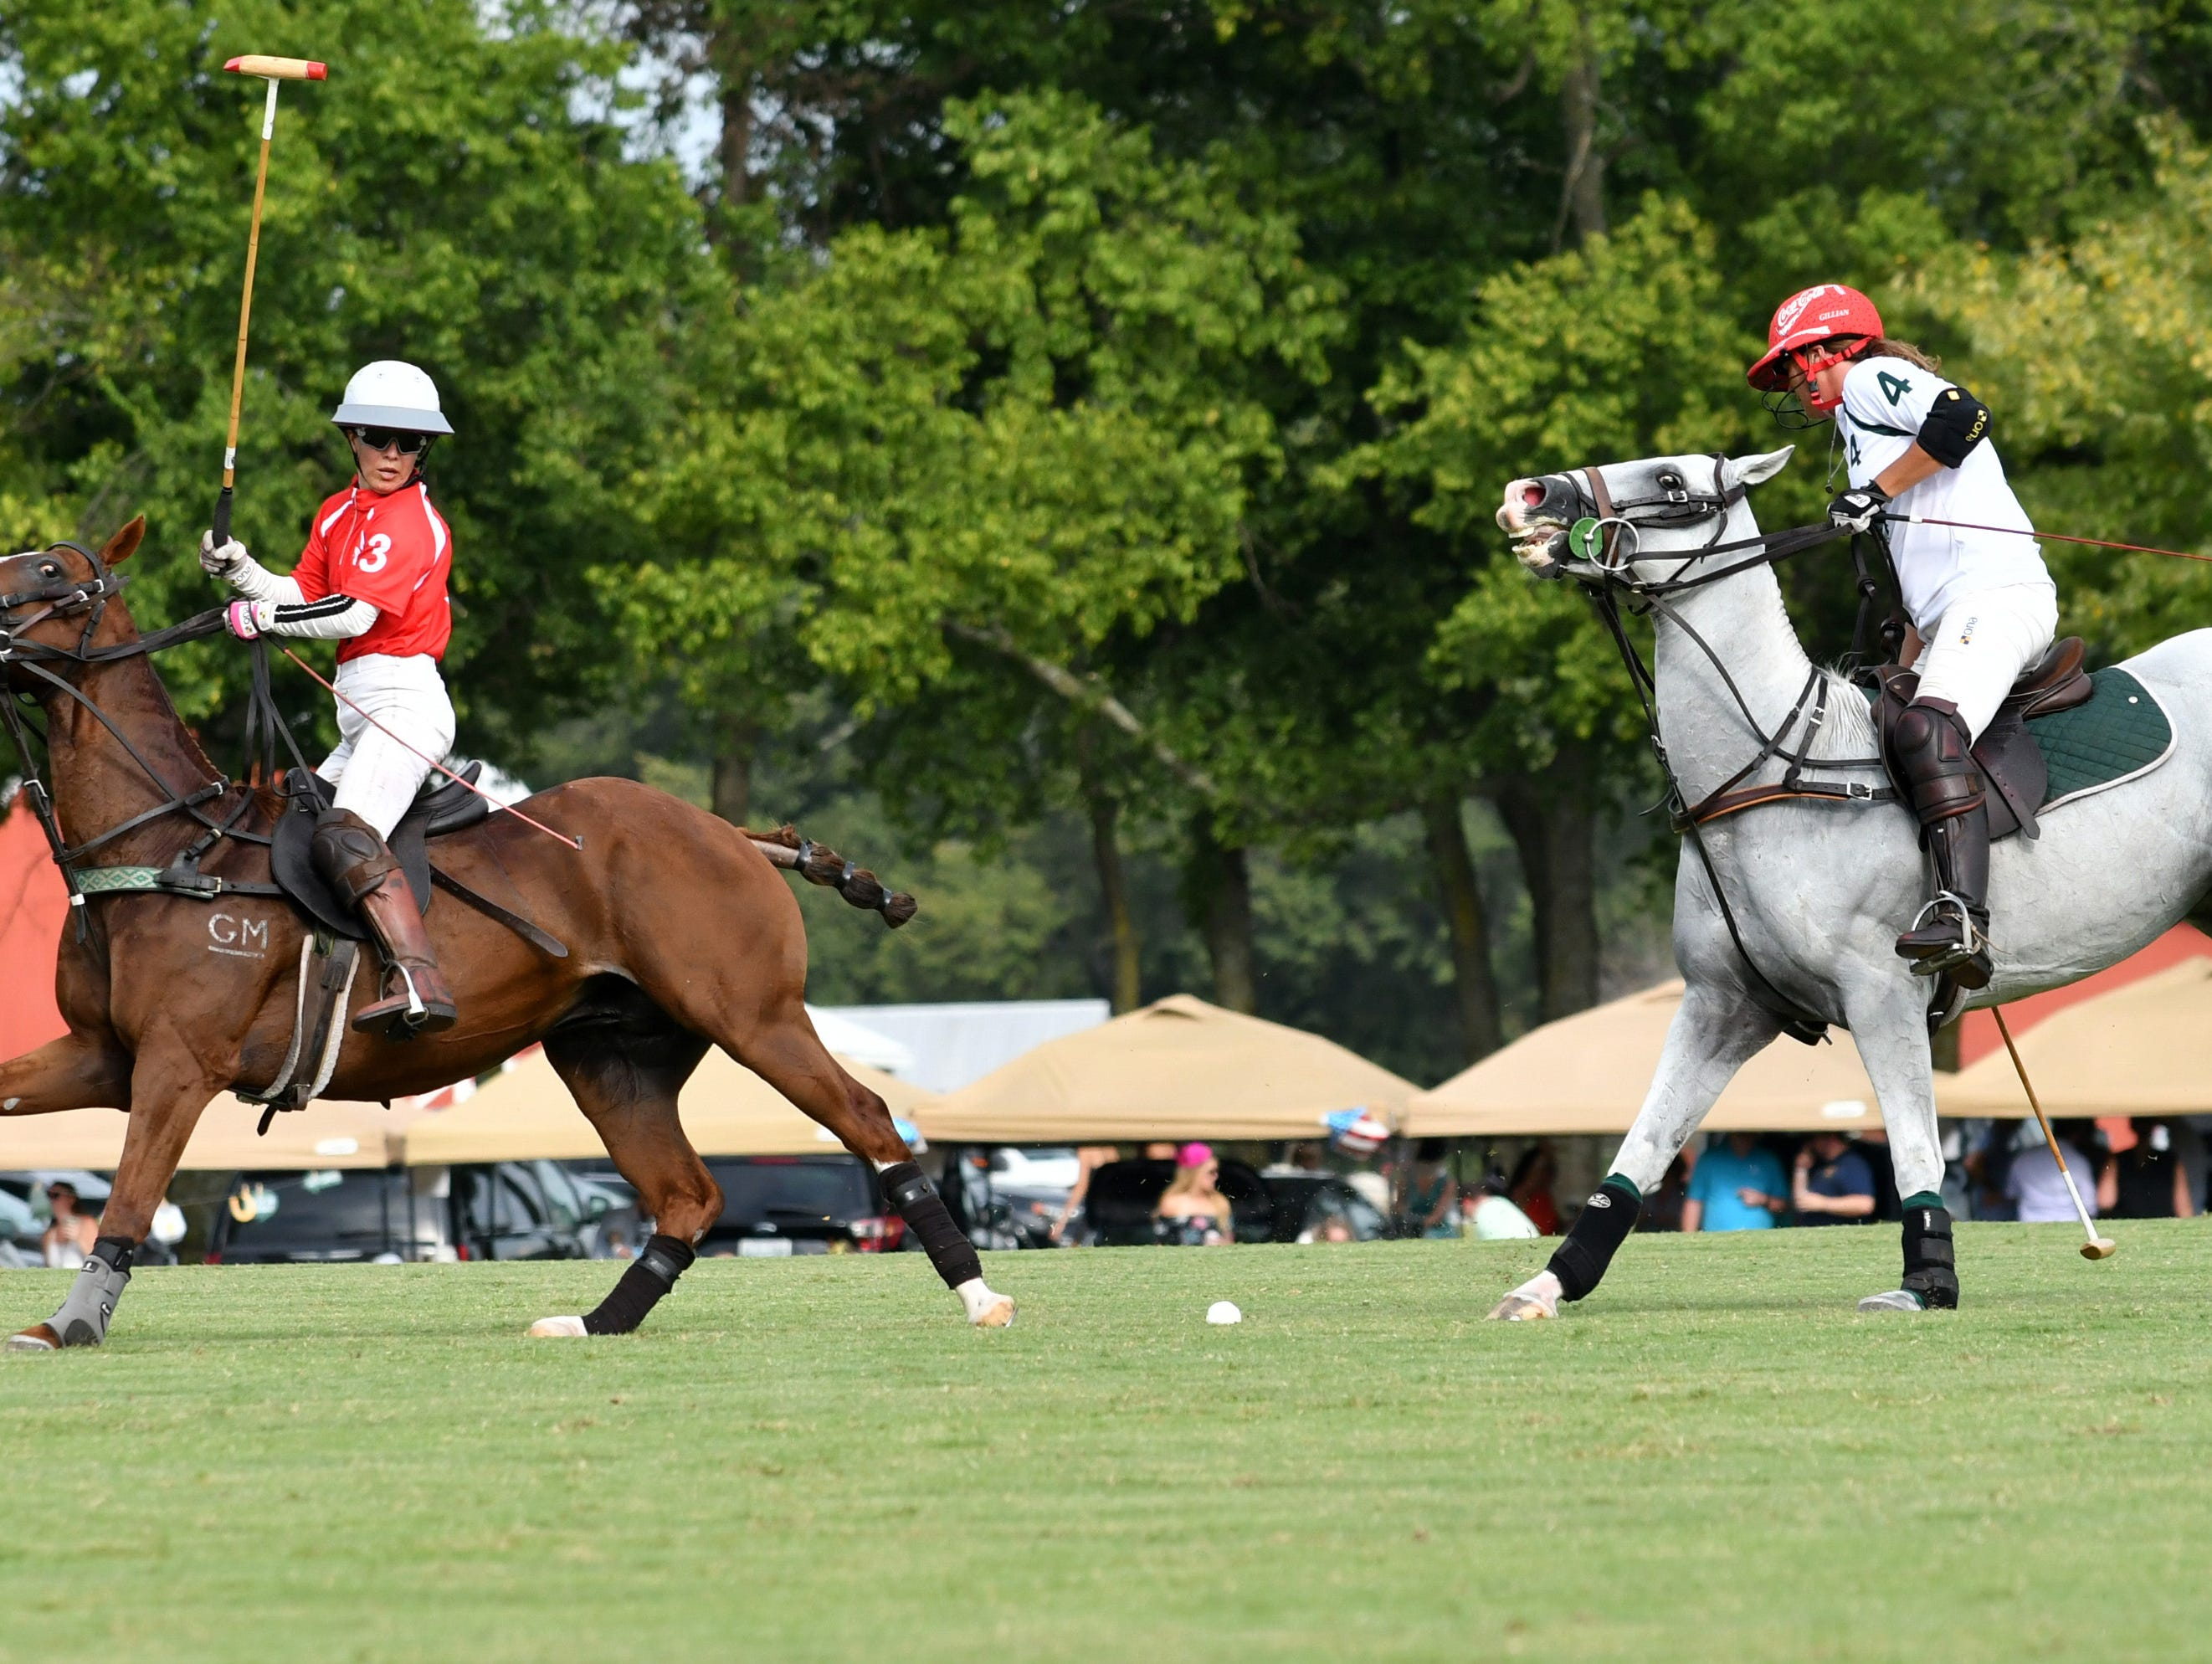 Ironhorse Farms and Colonial Hill Farm Teams compete in Chukkers for Charity 2018.